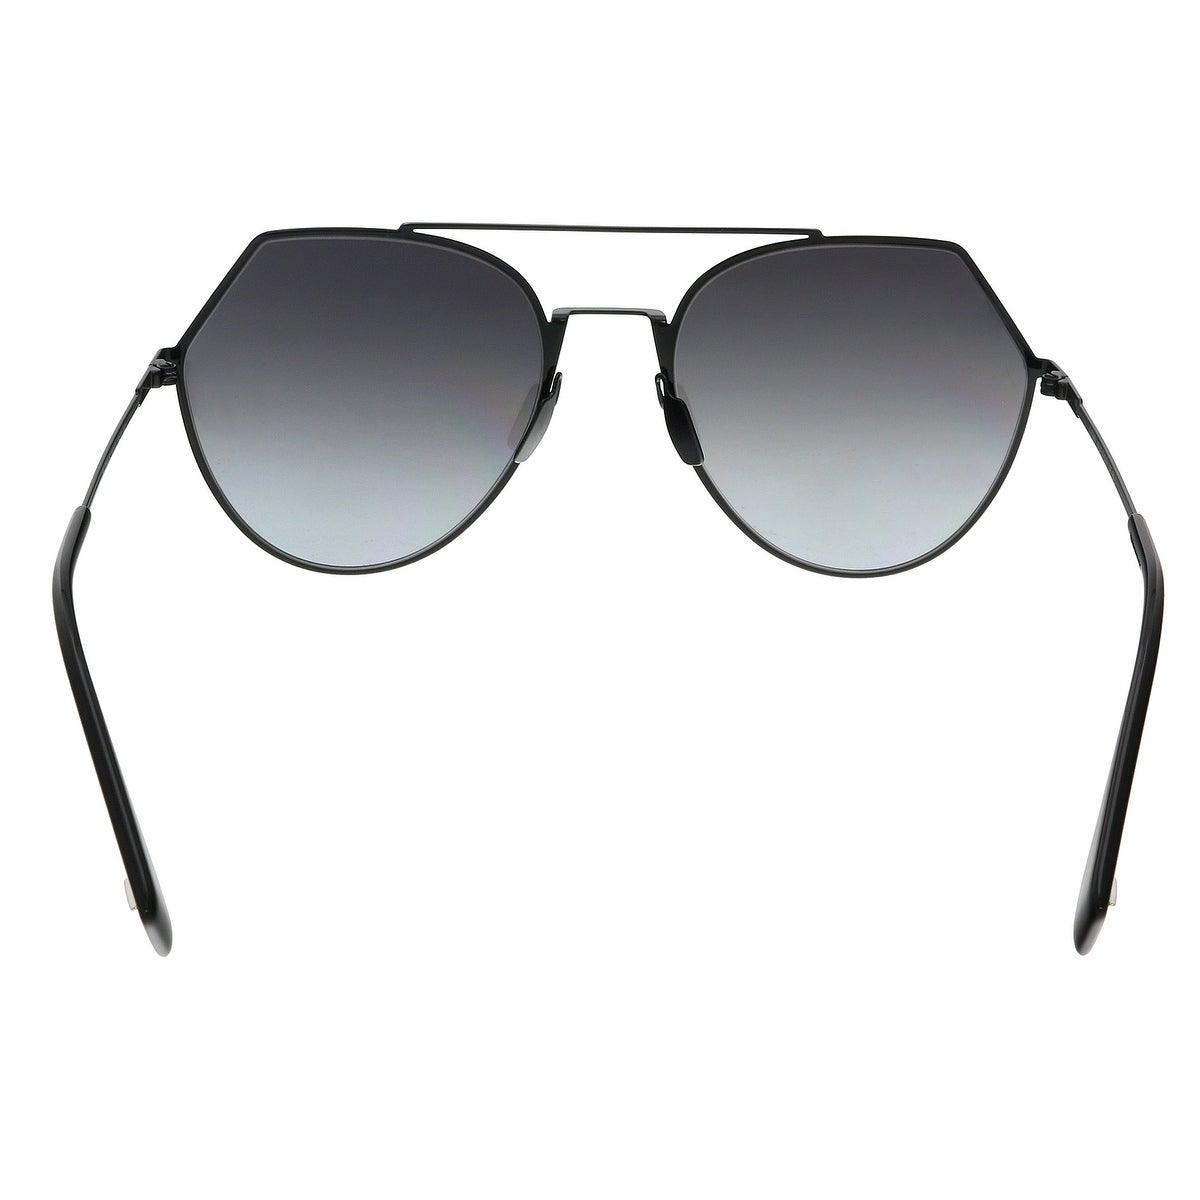 0ac4488a24953 Shop FENDI 0194 S GO 0807 Black Aviator Sunglasses - 55-19-140 - Free  Shipping Today - Overstock - 22818044